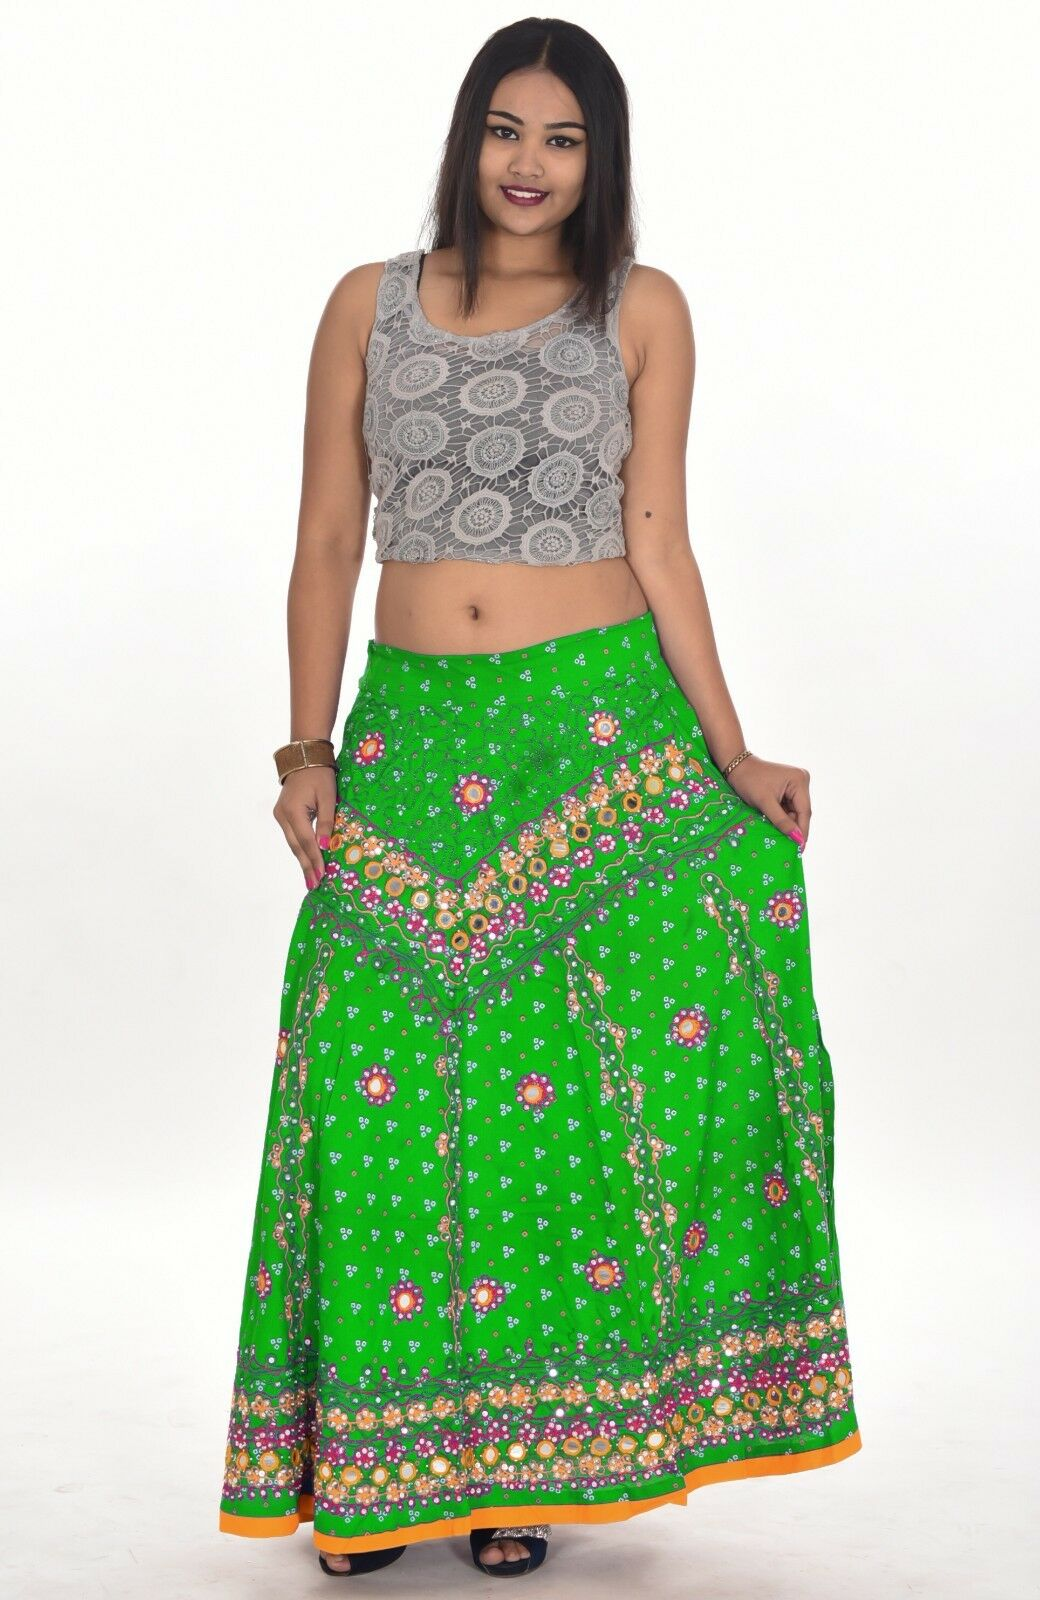 Indian 100% Cotton Women's Long Skirt Hippie Plus Size Embroidered Green color